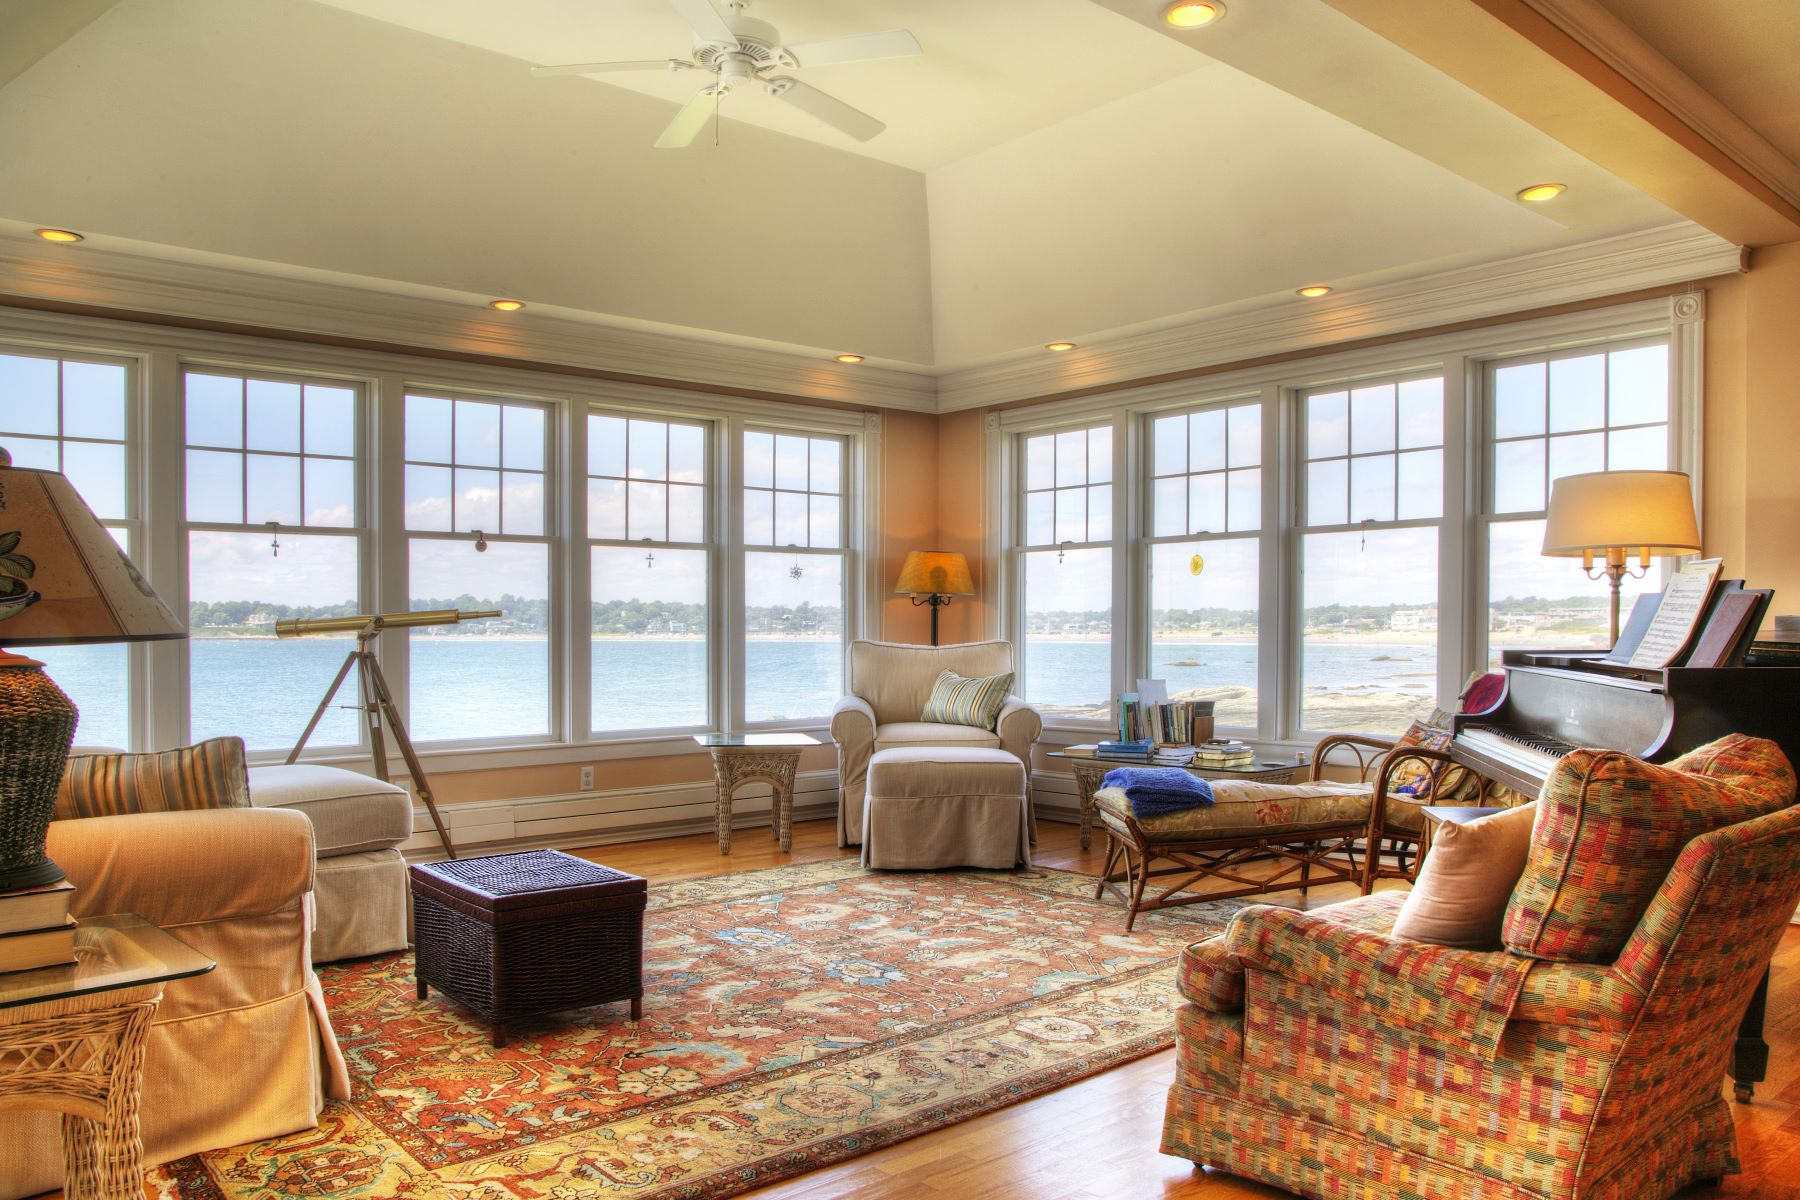 Additional photo for property listing at 'Cliff Cottage' 63 Shore Drive Middletown, Rhode Island 02842 United States